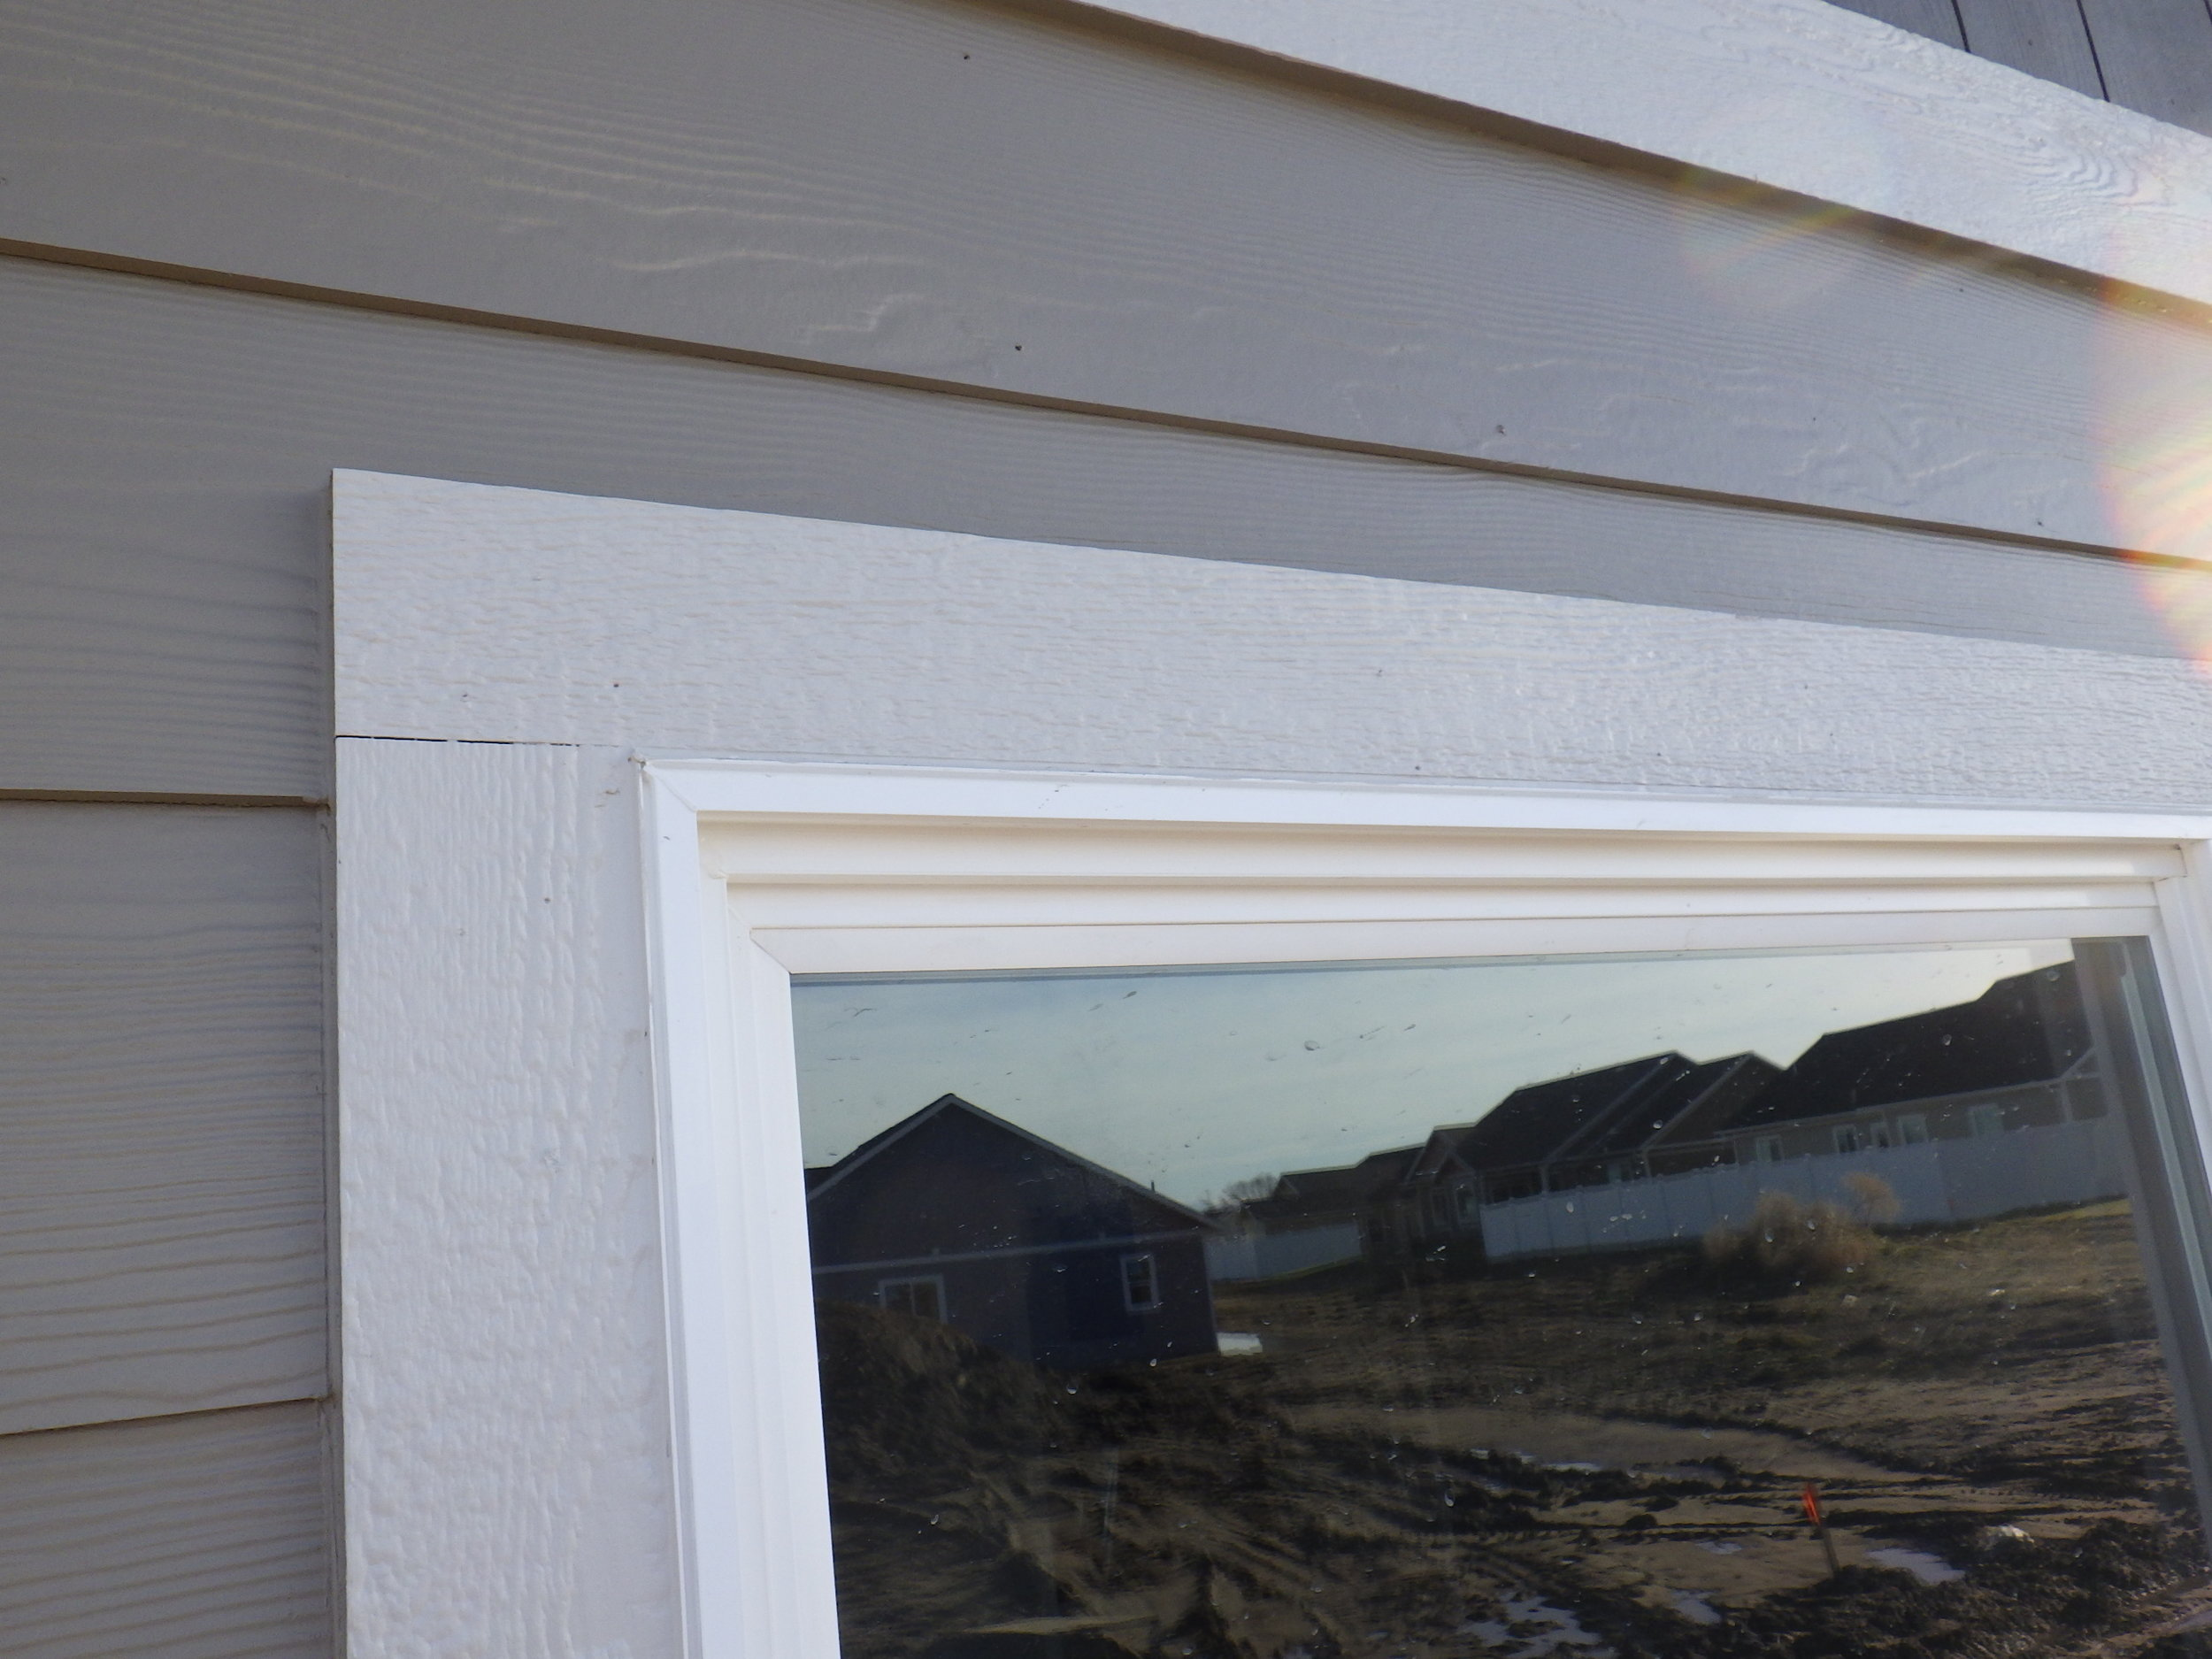 Flashing missing over this window trim